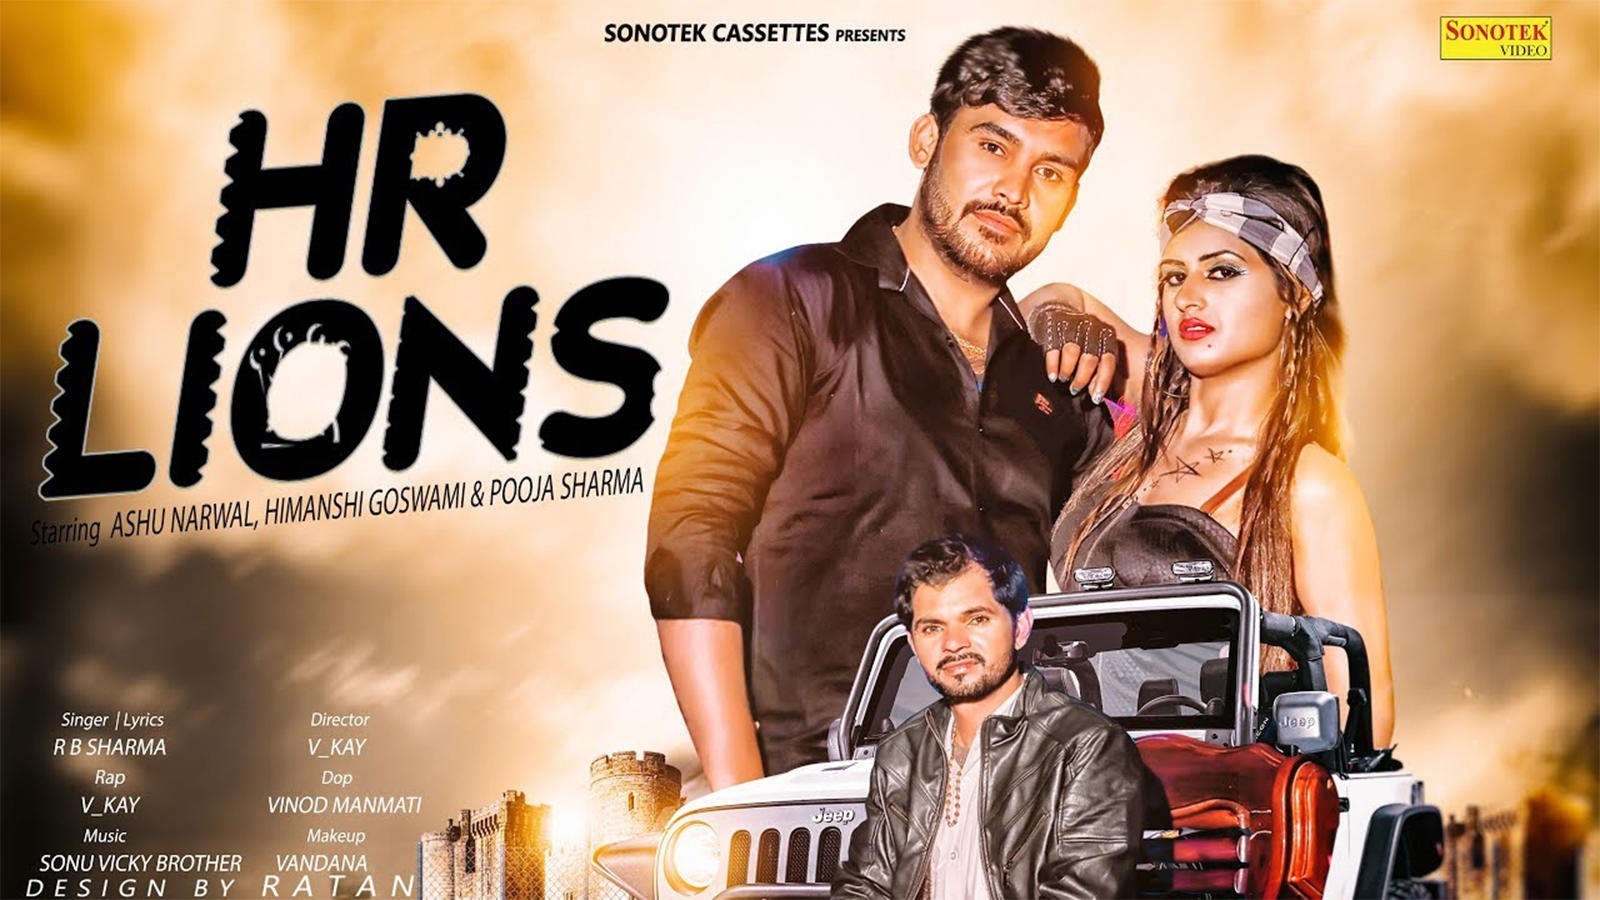 Latest Haryanvi Song HR Lions Sung By RB Sharma